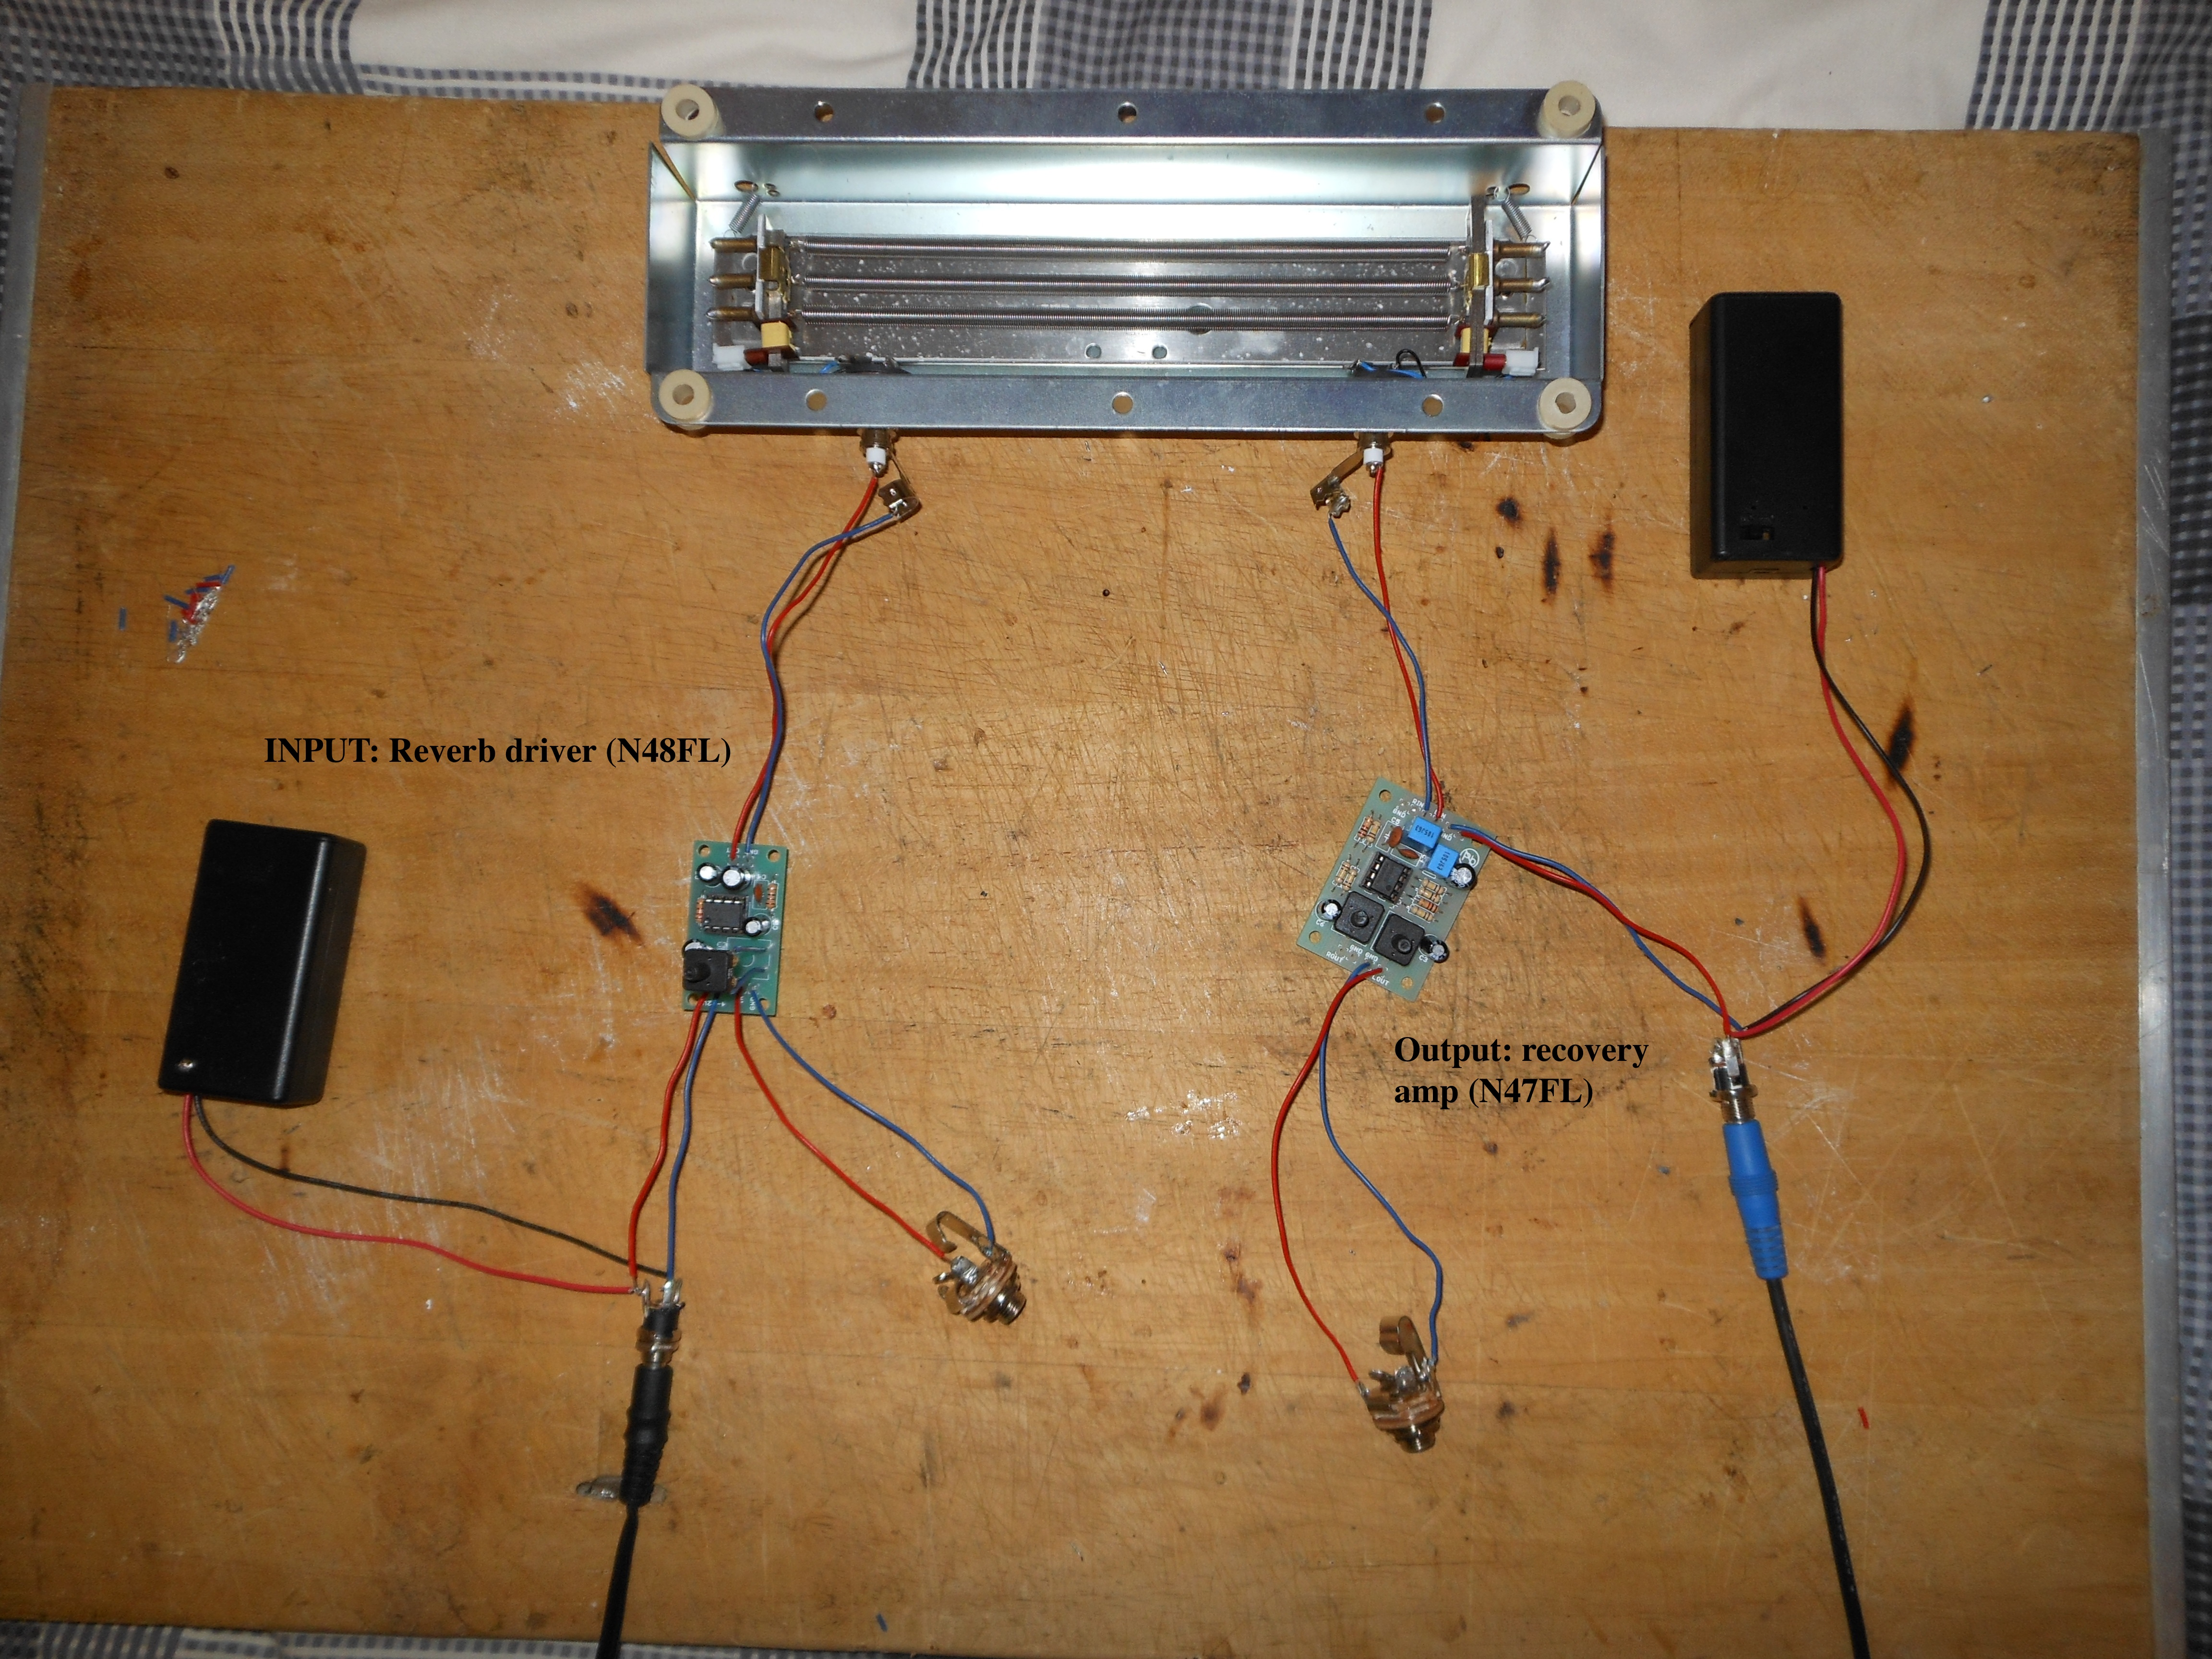 6c33c 3 furthermore Need Help With 90vdc Pm Motor Speed Control Circuit moreover Circuit Power   Ocl 35w With 2n3055 additionally Elektor mp moreover Sugden Au51 Original Stereo Power  lifier 1986 1990. on power amplifier schematic